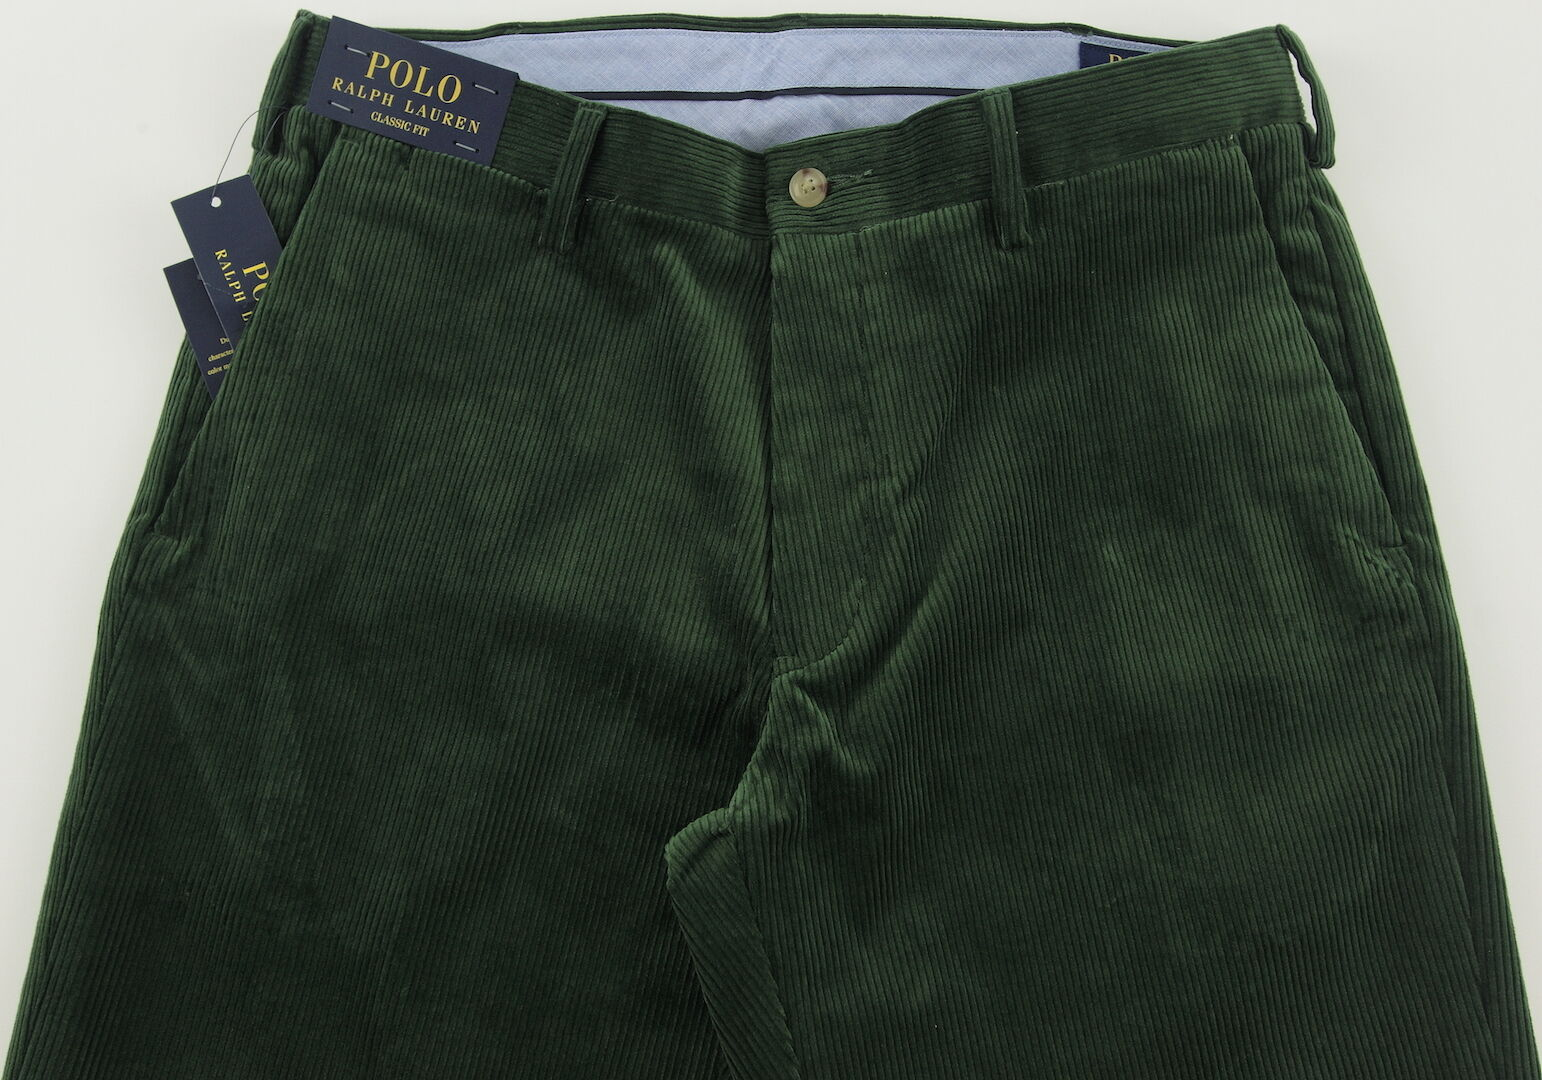 Men's POLO RALPH LAUREN Forest Green Corduroy Pants 32x32 32 NWT NEW WOW